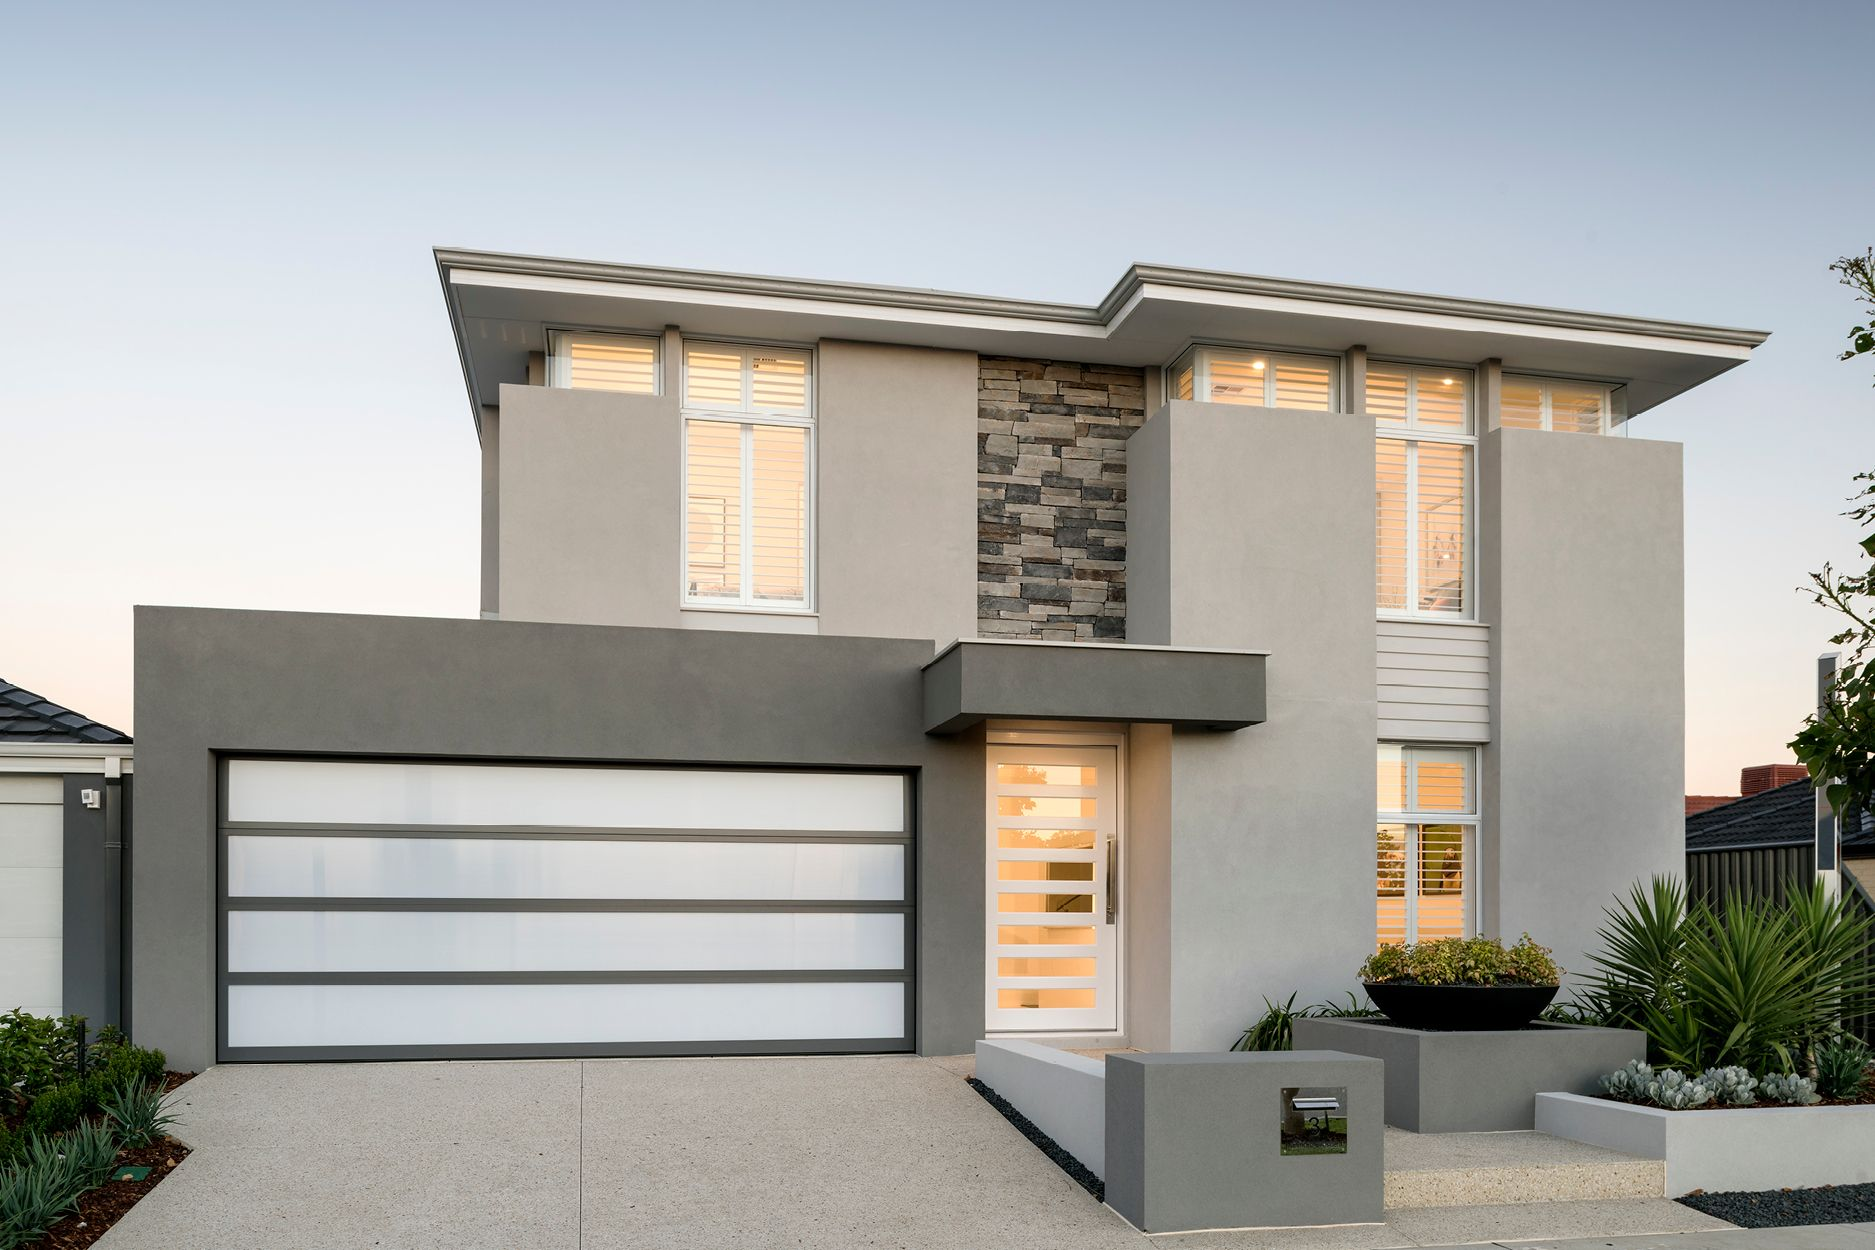 The Riversea C Ben Trager Homes Perth Display Home Elevation Storey Homes Modern House Exterior House Design